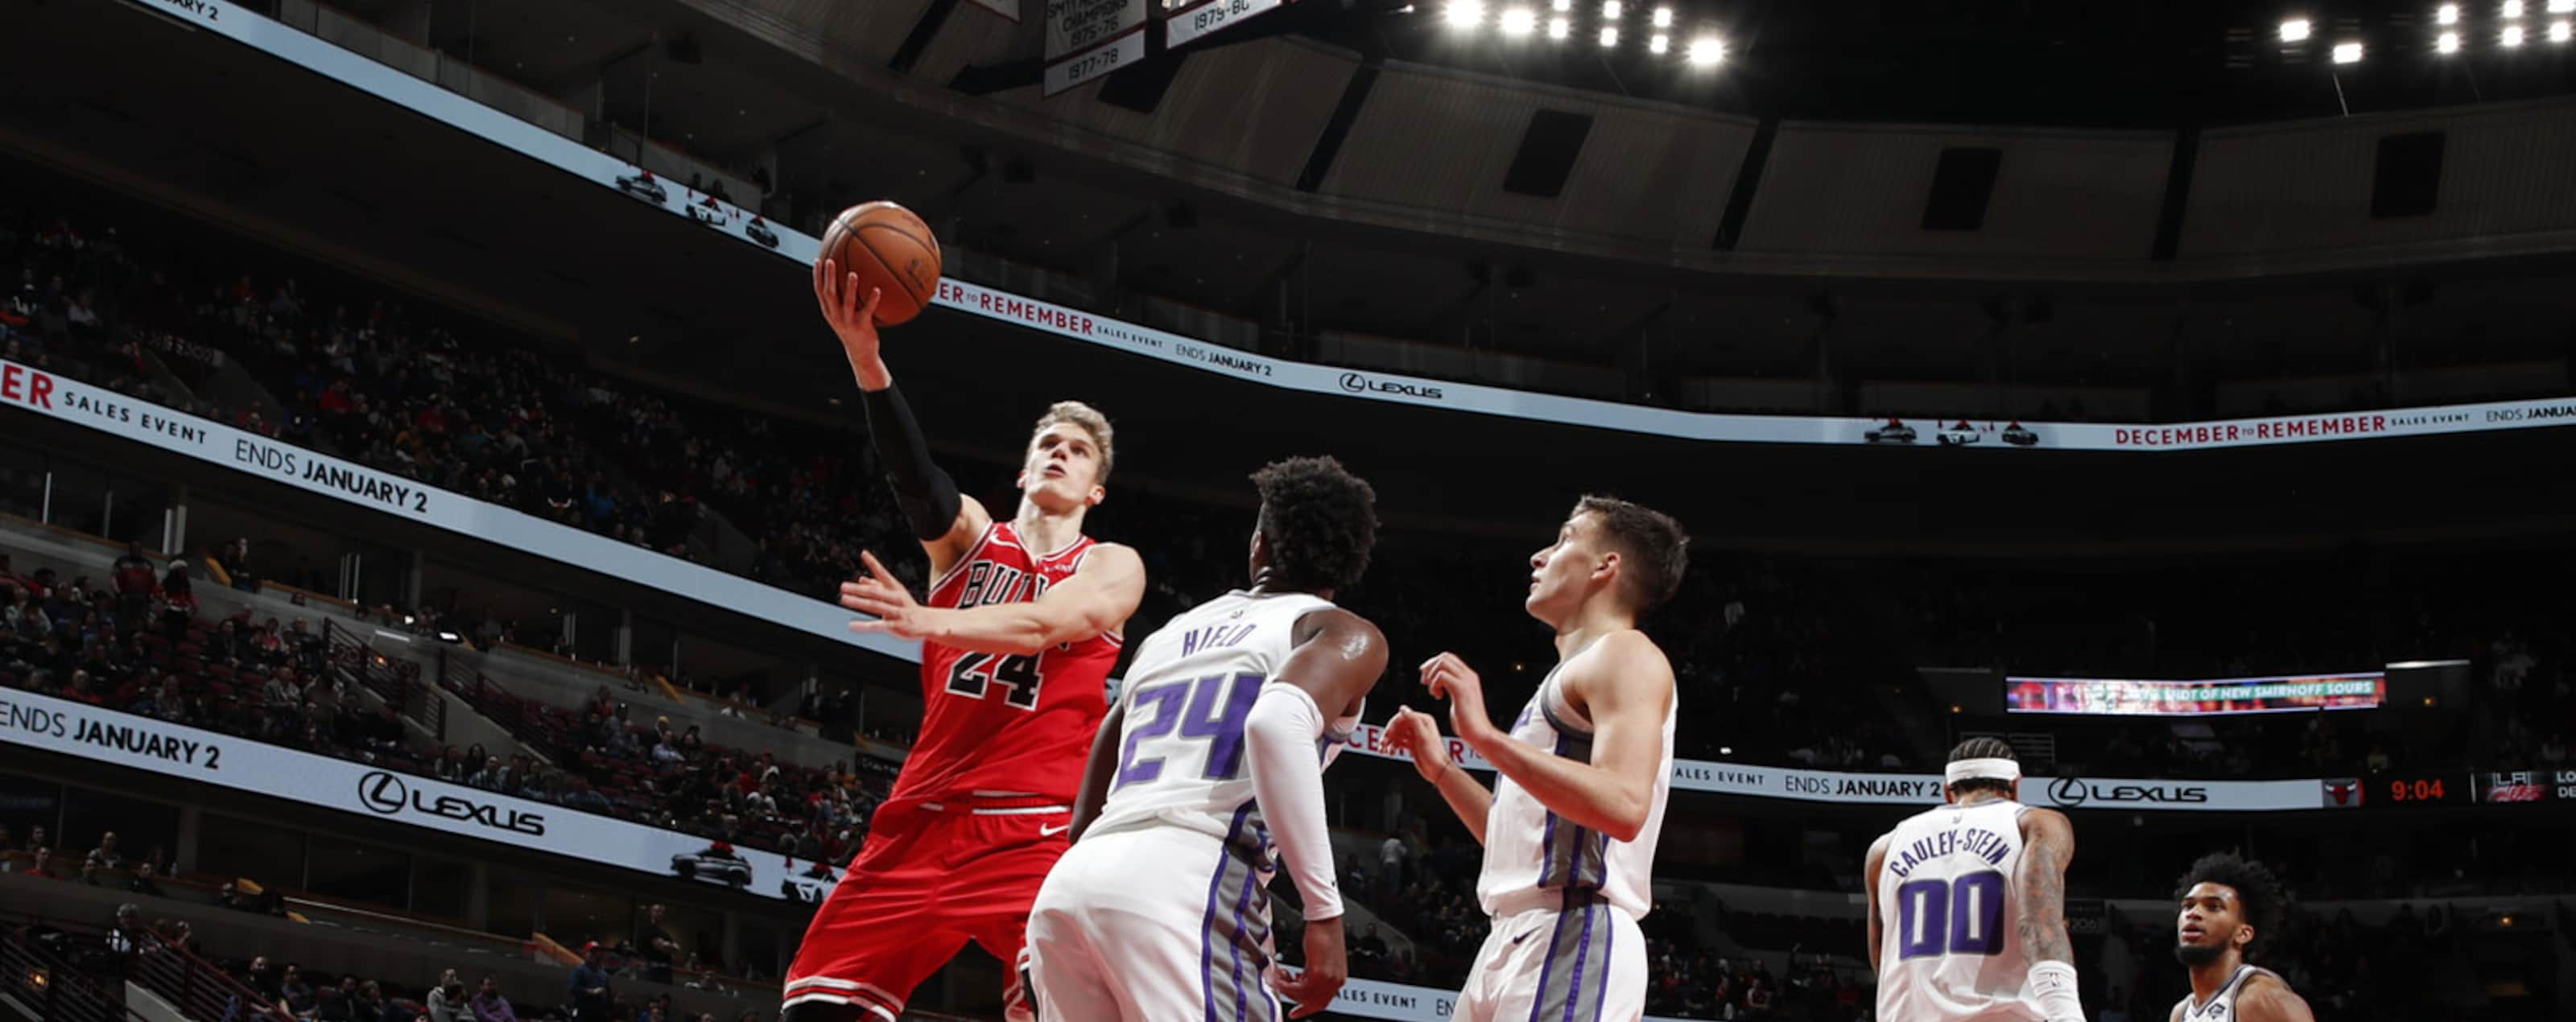 Lauri Markkanen attempts a layup against the Kings